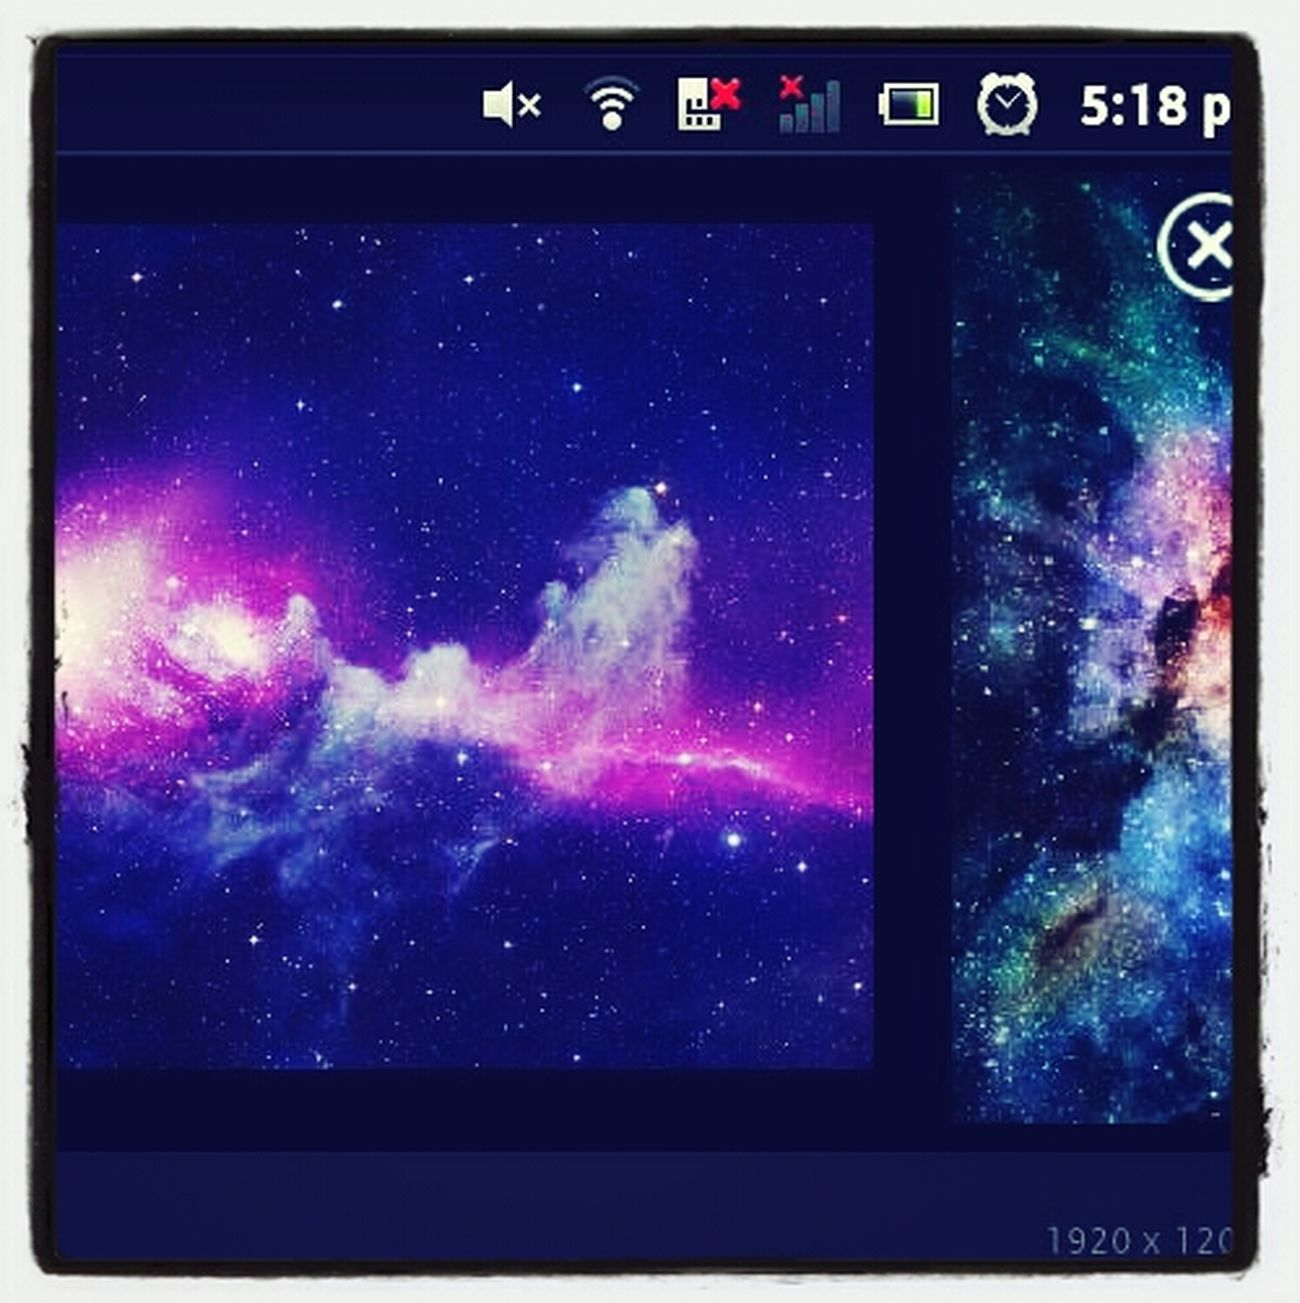 Galaxy Cool Pretty Imaginative